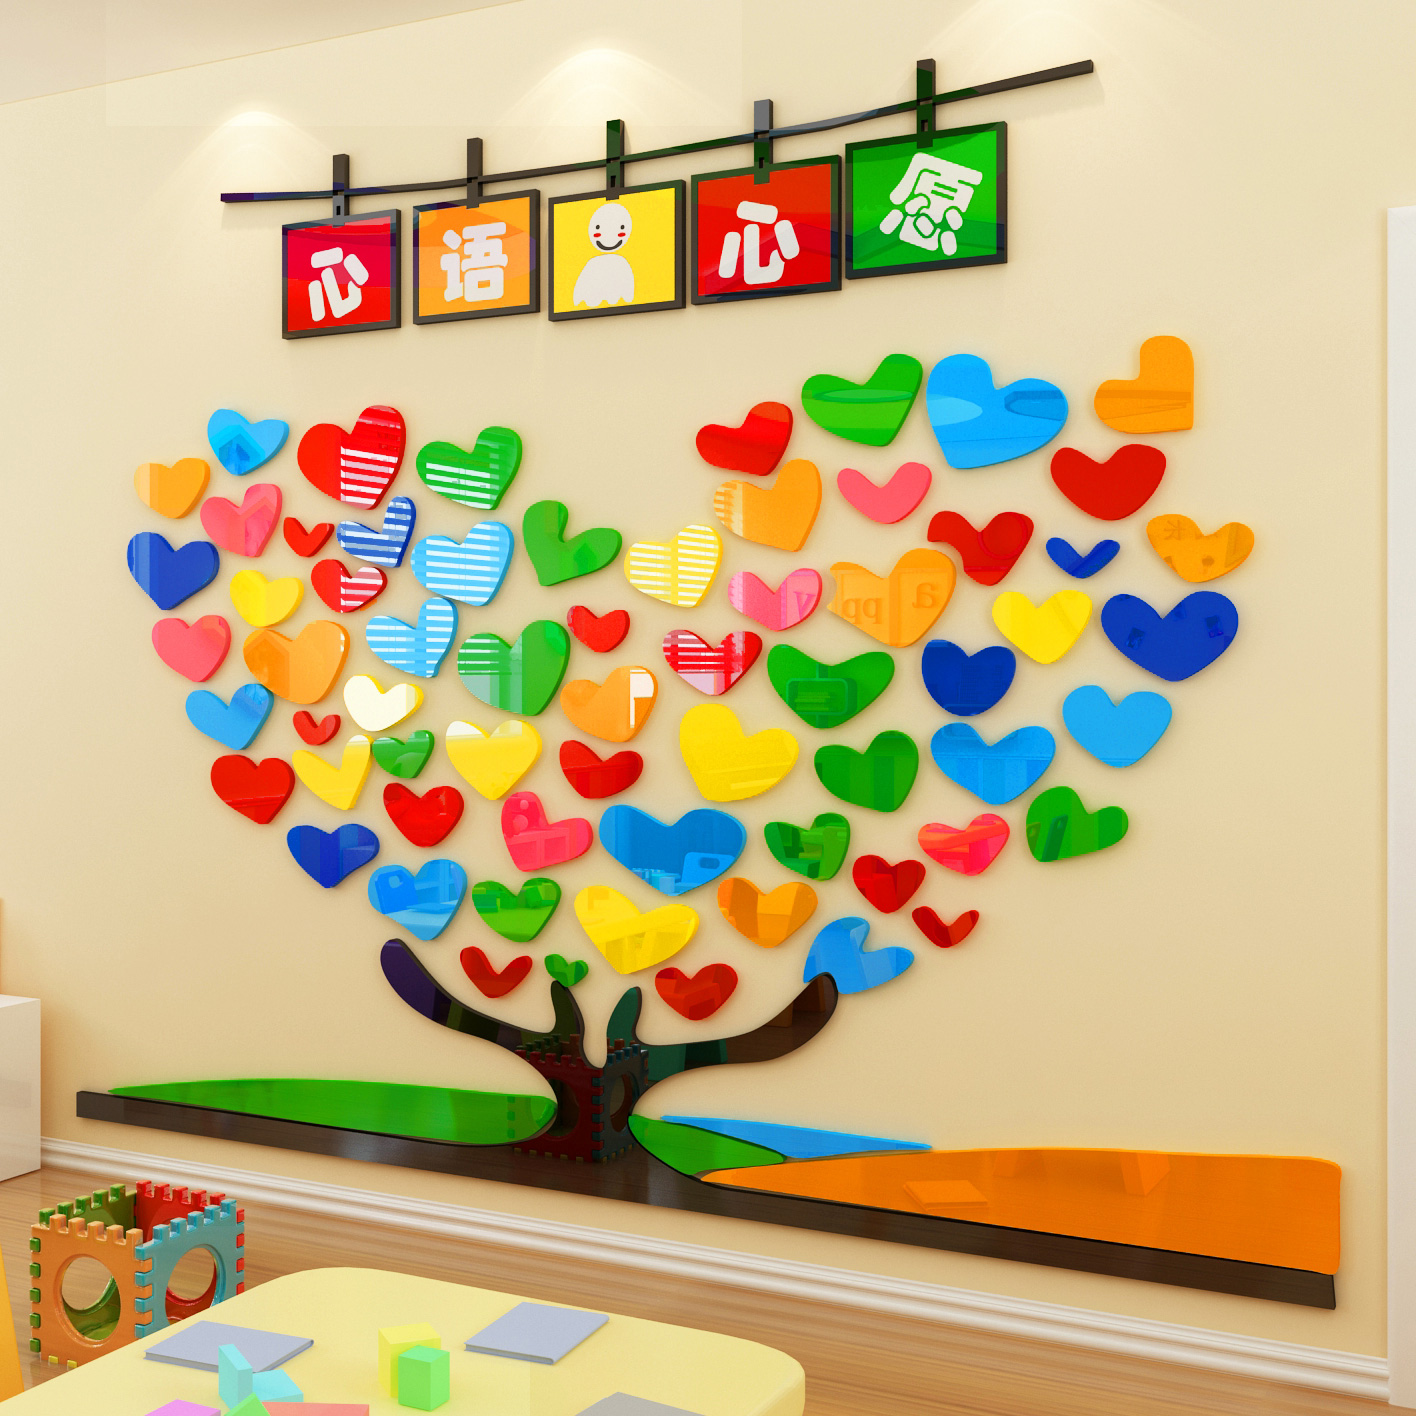 Cute Decorating Classroom Walls Images - The Wall Art Decorations ...